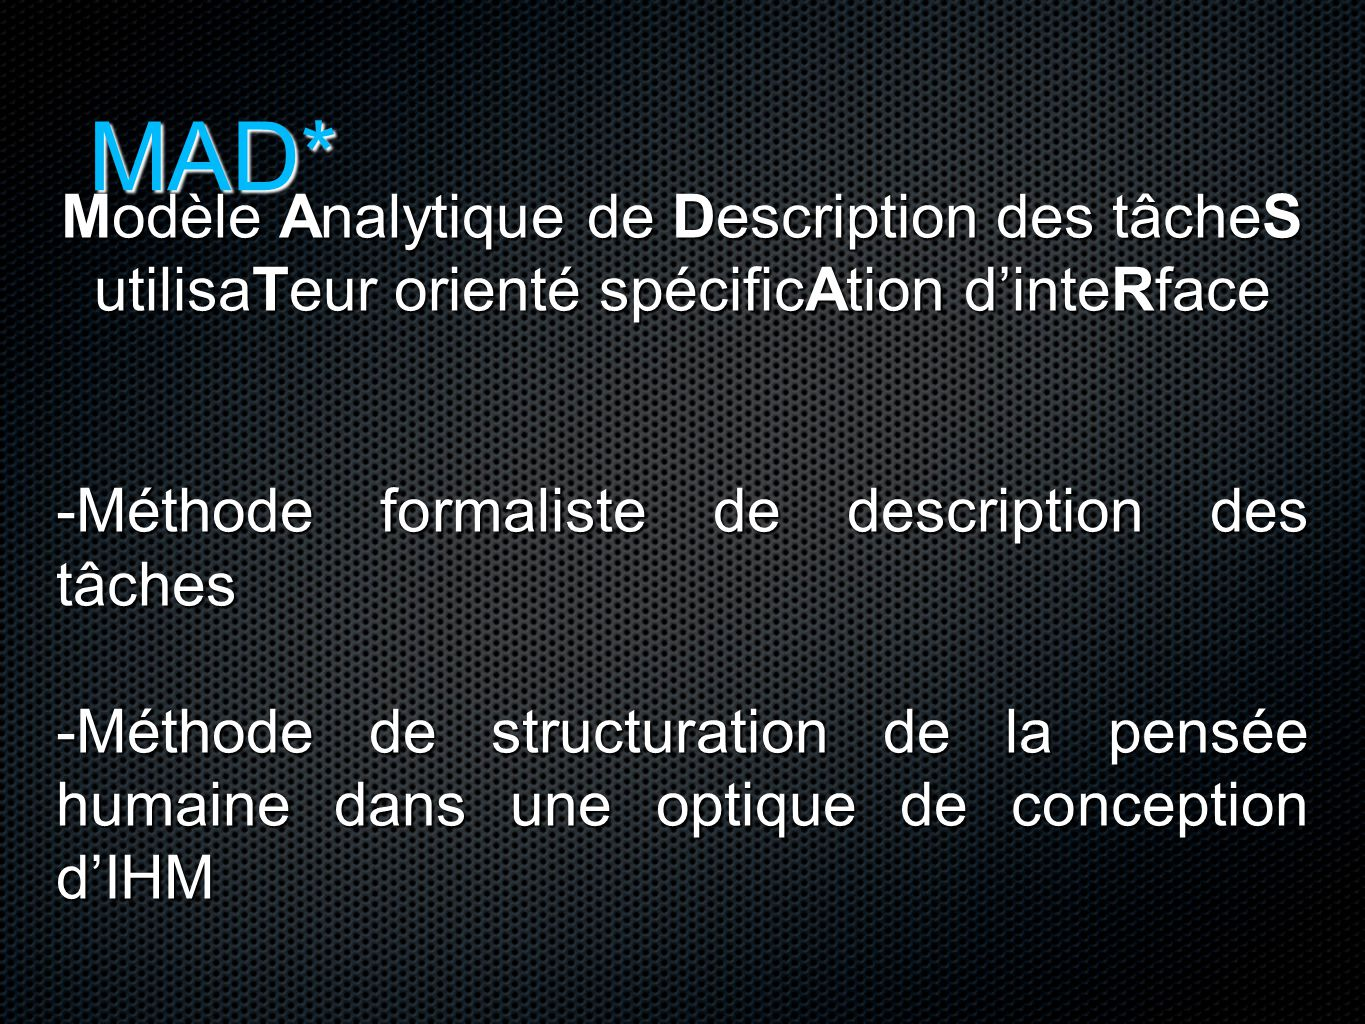 MAD* Modèle Analytique de Description des tâcheS